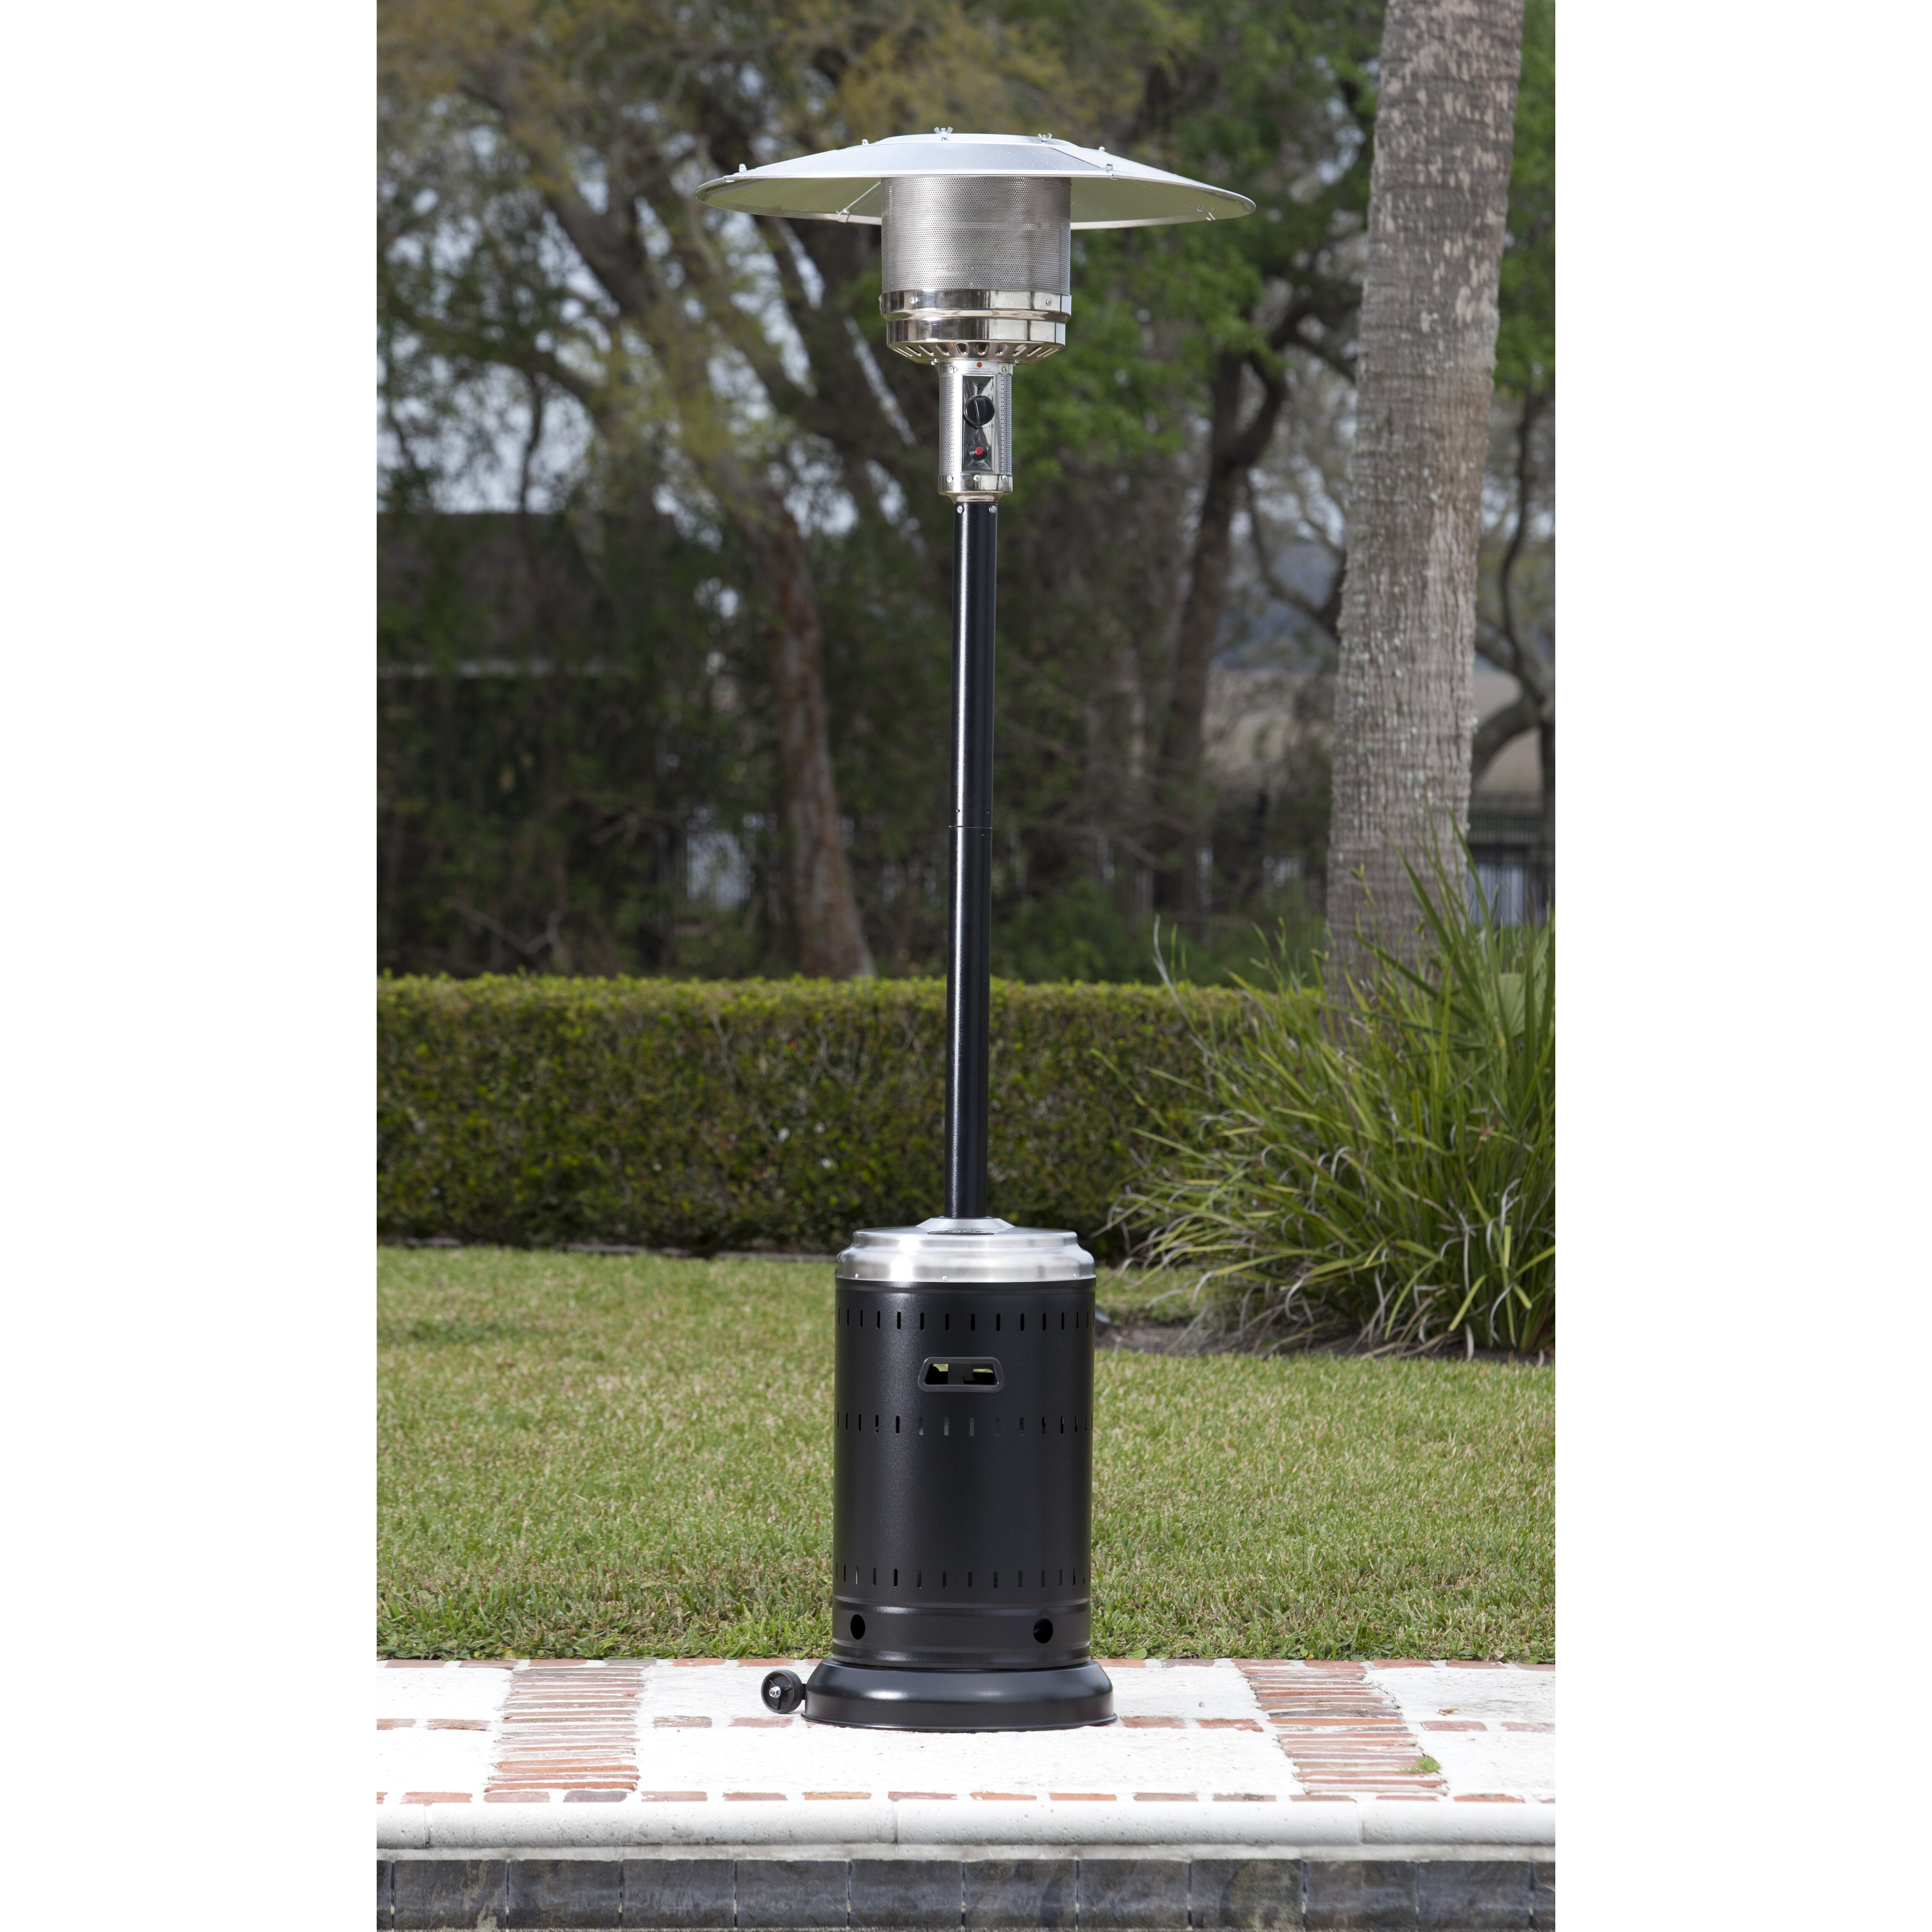 Fire Sense Hammer Tone Stainless Steel Commercial 46000 BTU – Fire Sense Patio Heater